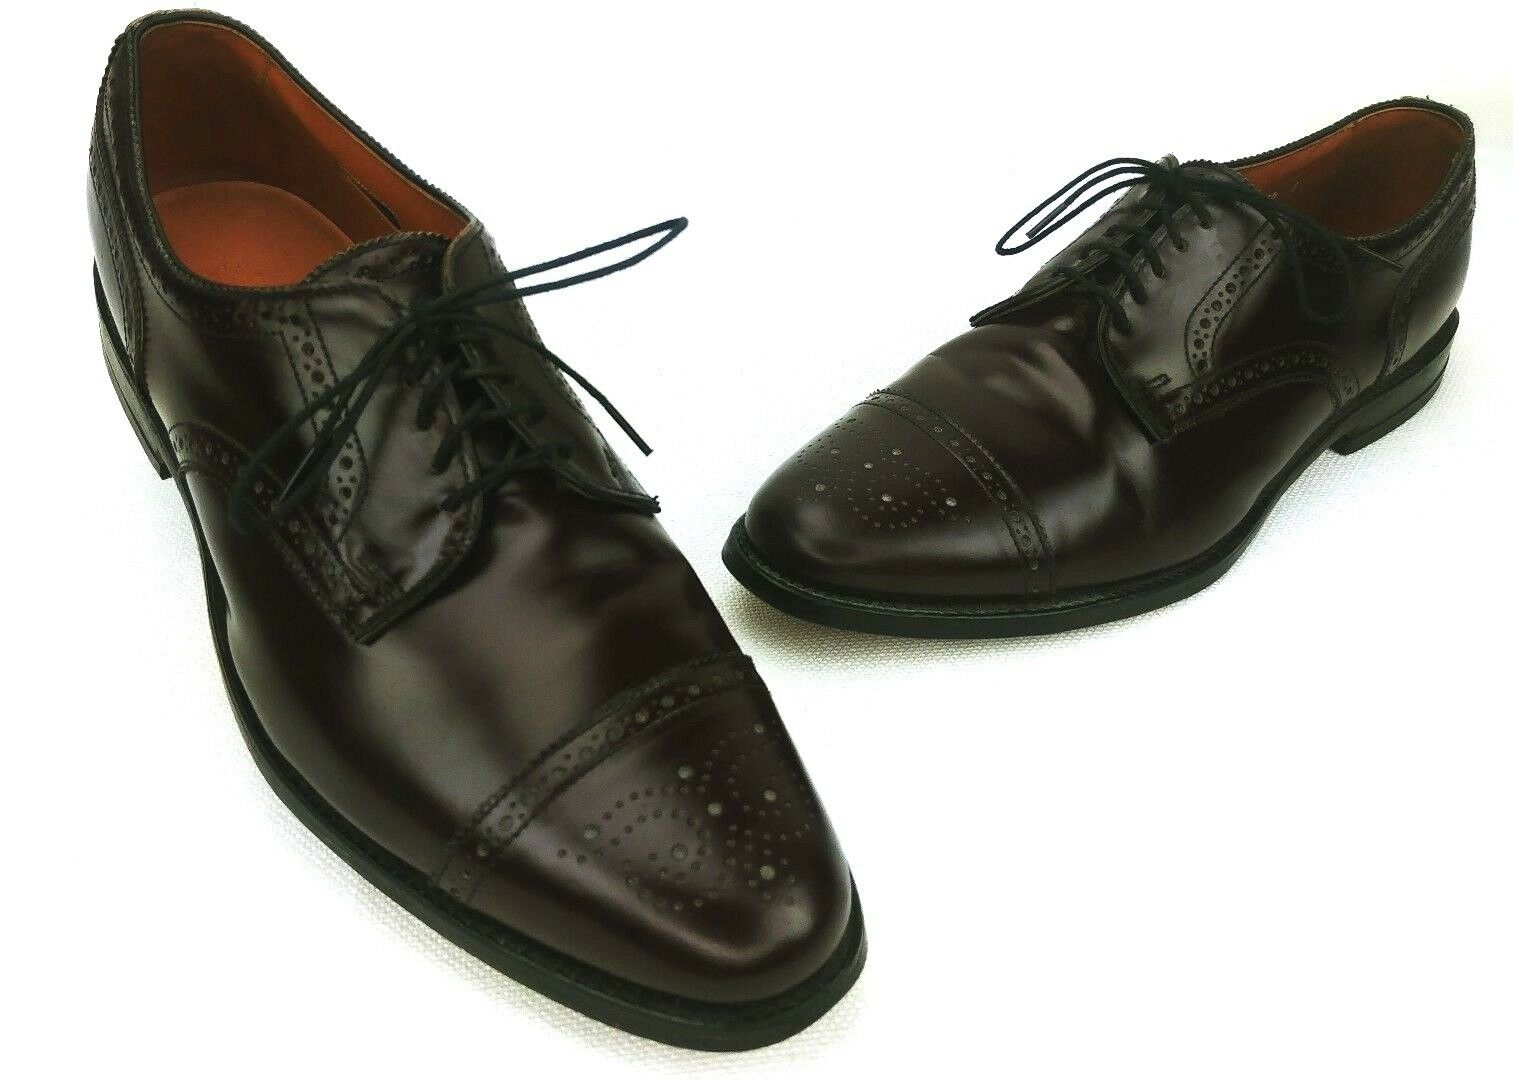 Allen Edmonds Mens Oxblood Burgundy Sanford Cap Toe Oxford Size 12 B